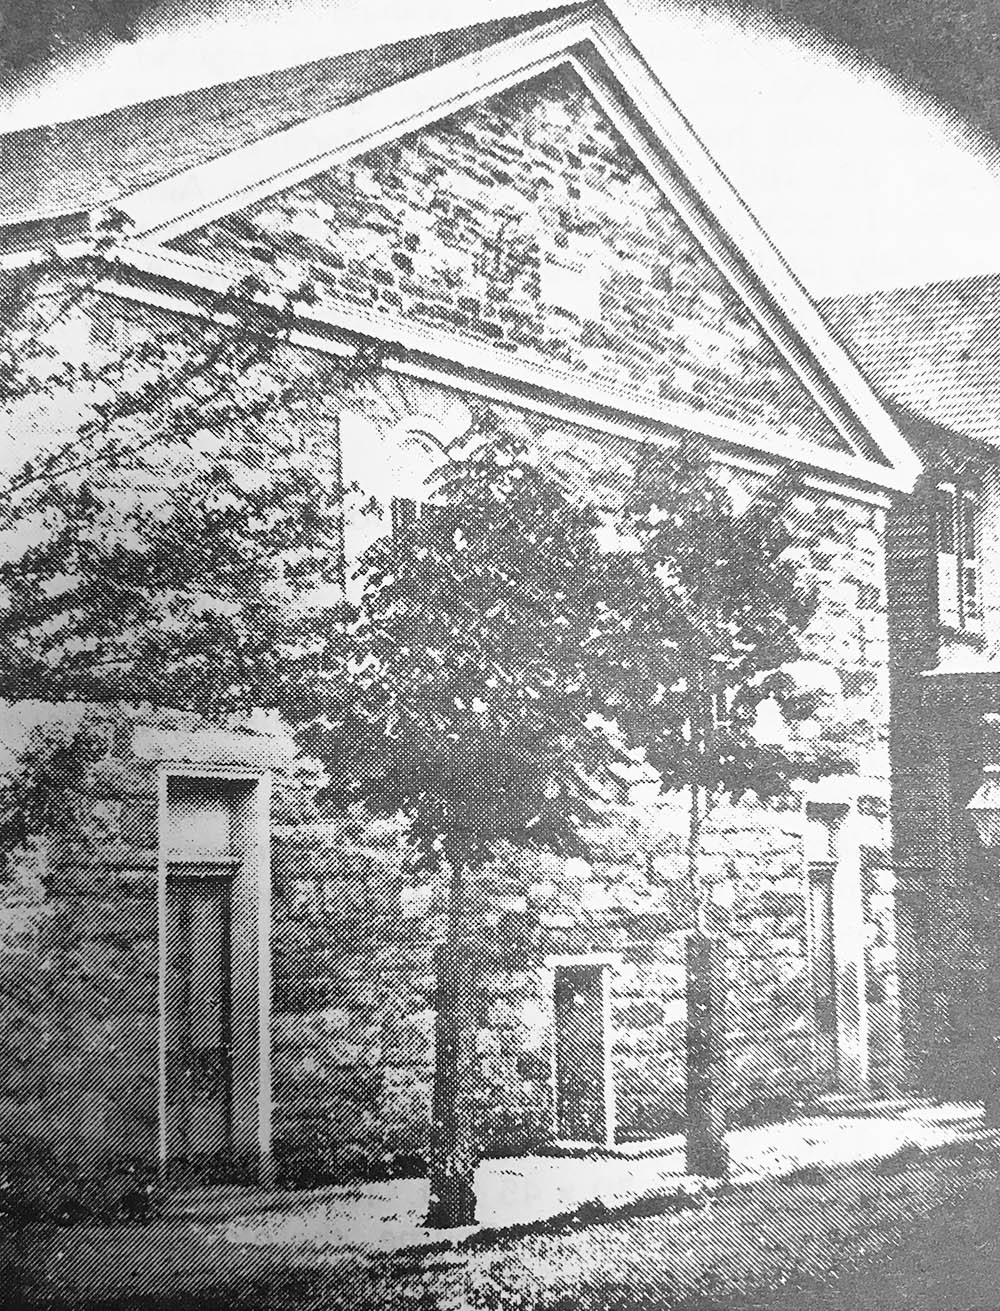 Original Stone Church Building, built in 1843